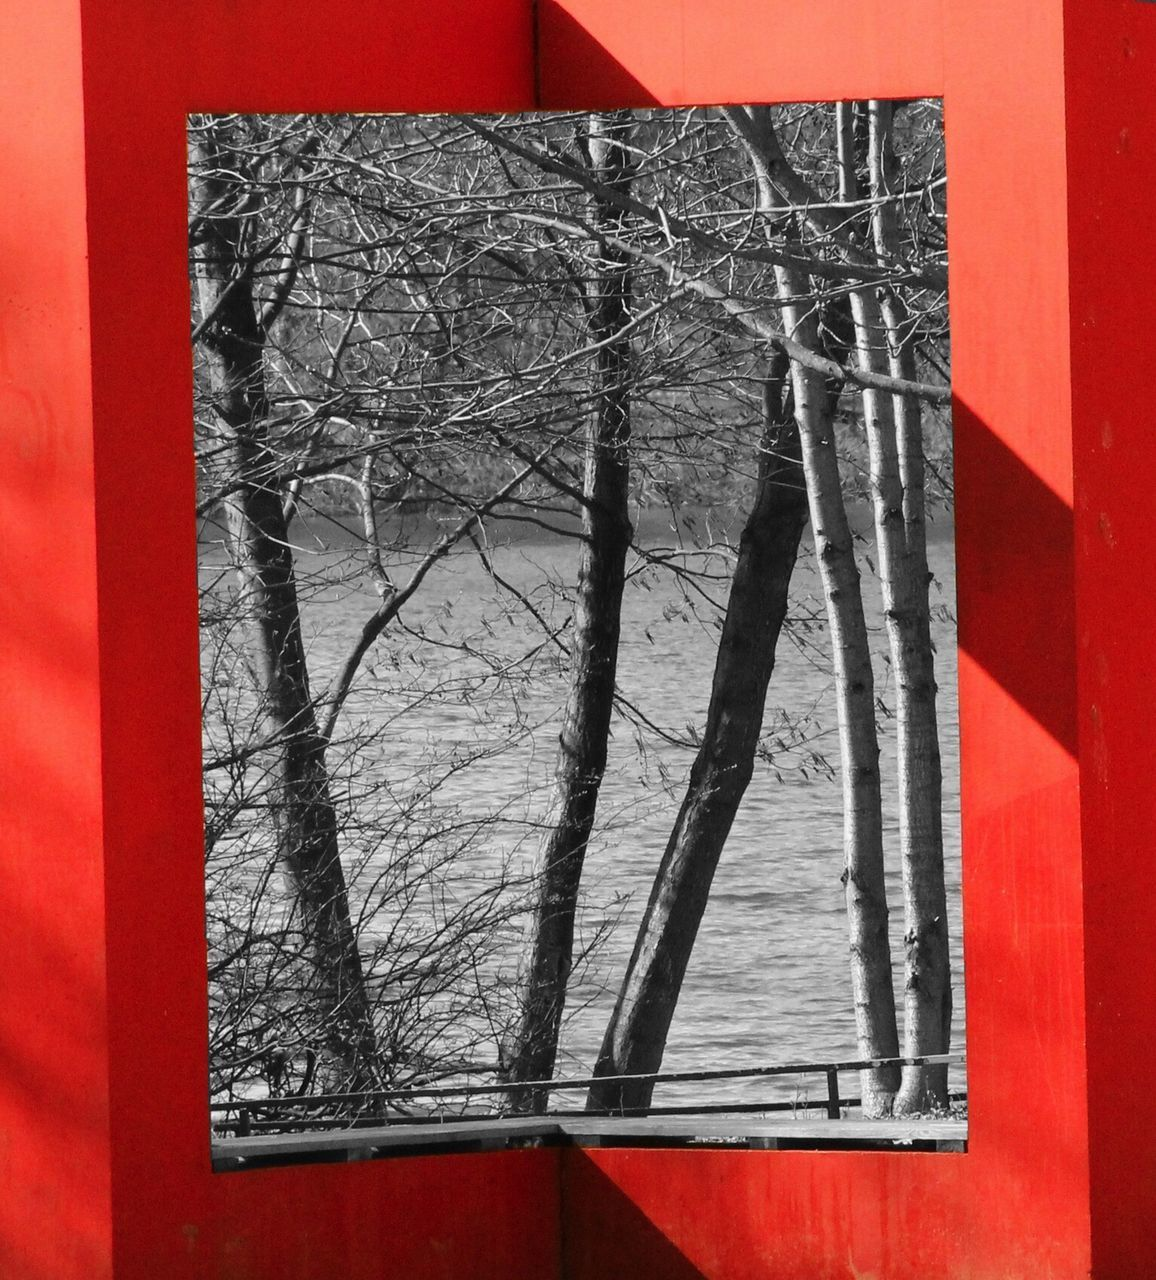 red, no people, close-up, tree, bare tree, day, outdoors